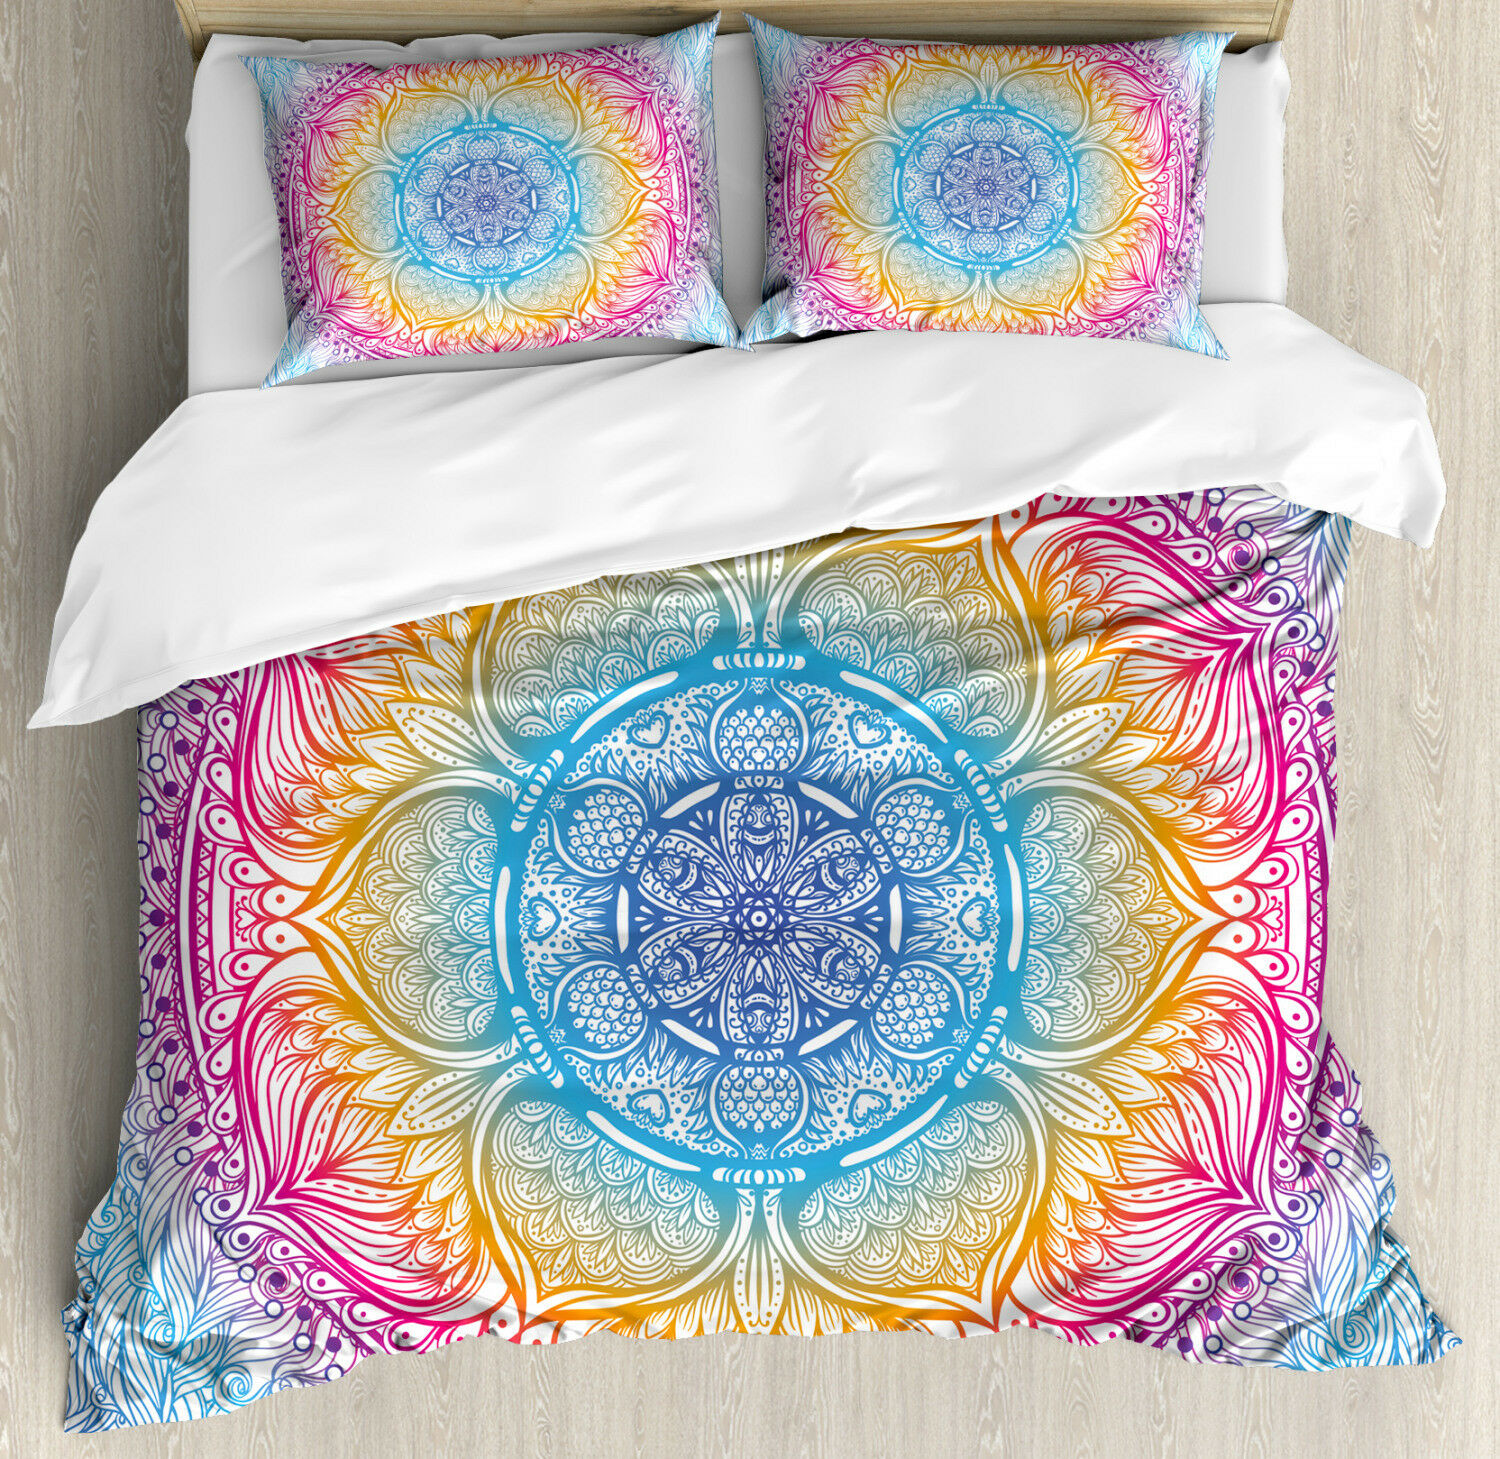 62b7a2d5c4 Ethnic Duvet Cover Set with Pillow Shams Magical Fantasy Round Print ...